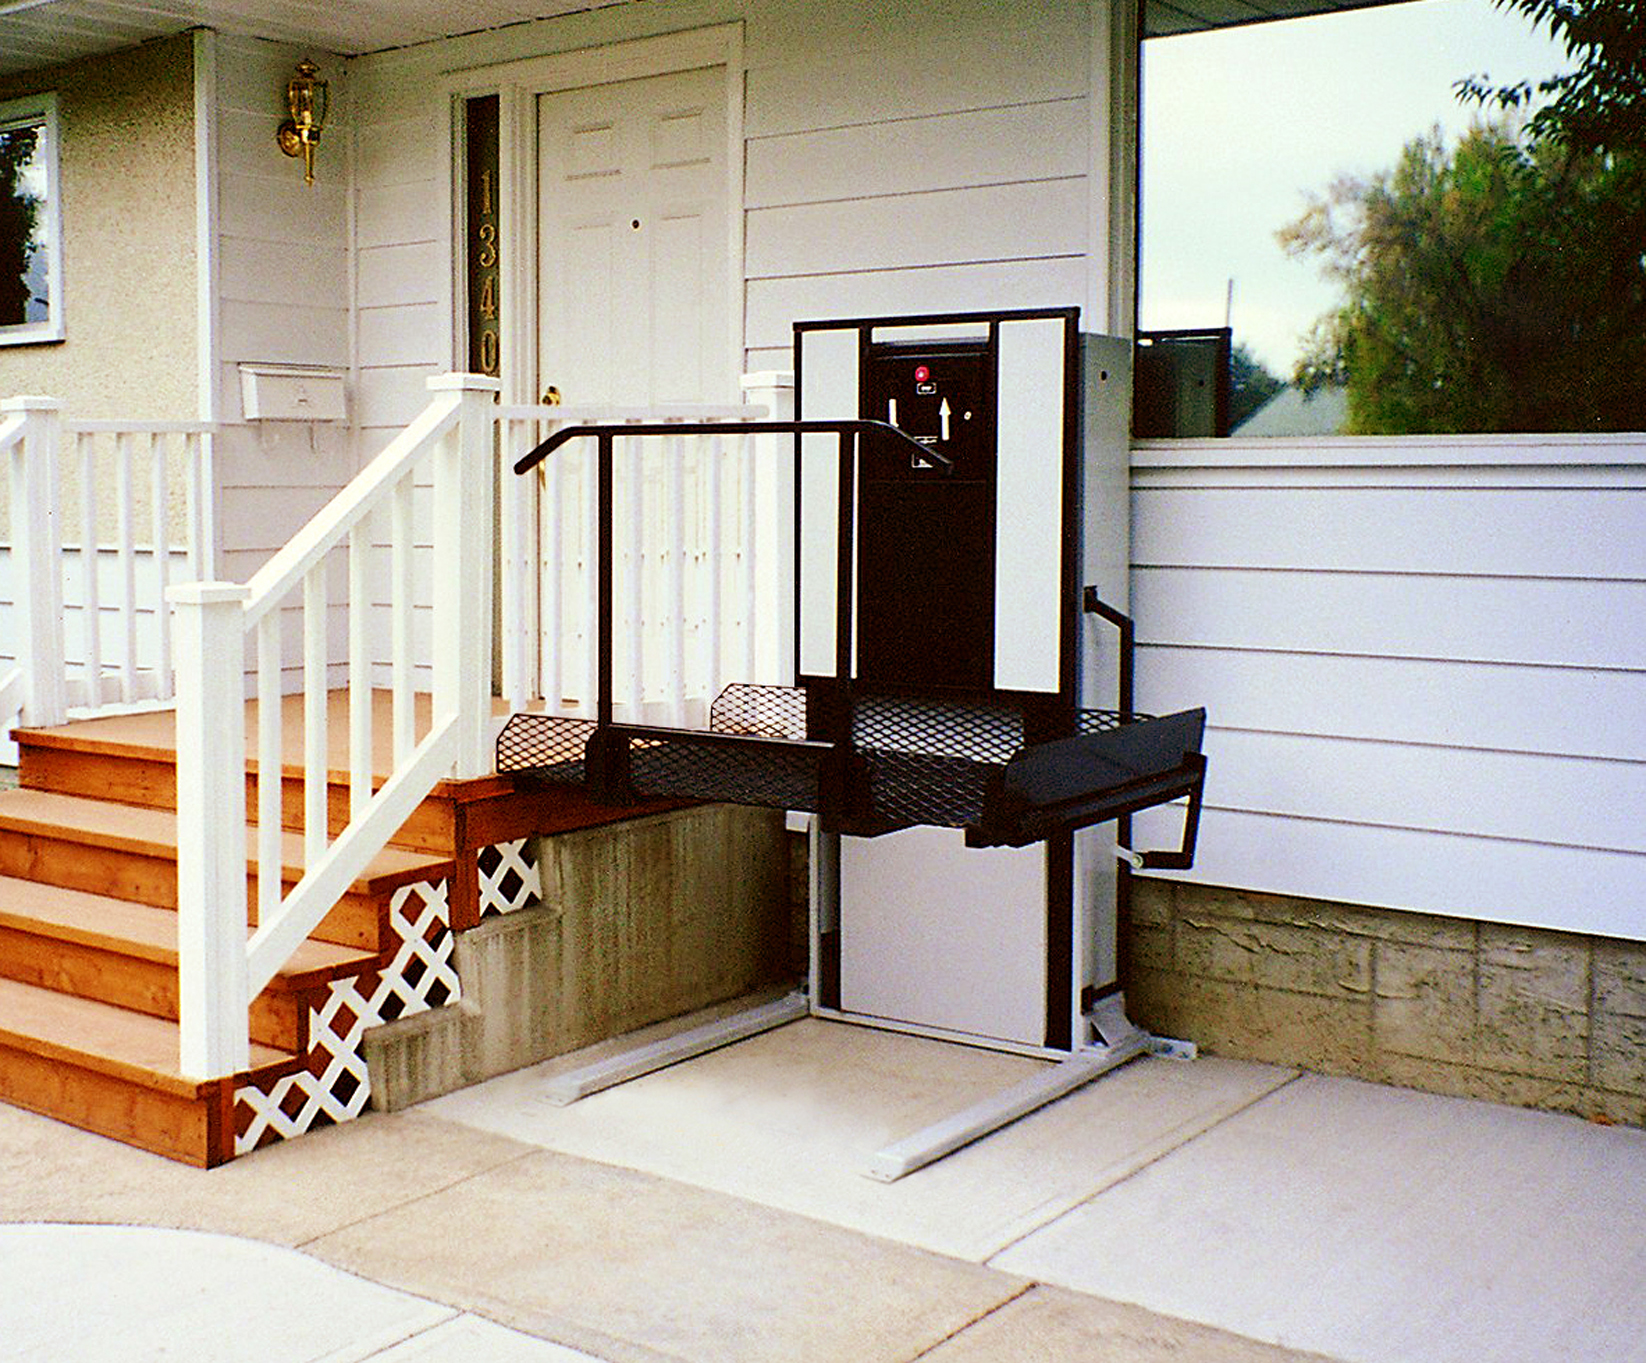 lift modification medical ramp to home porch access independence